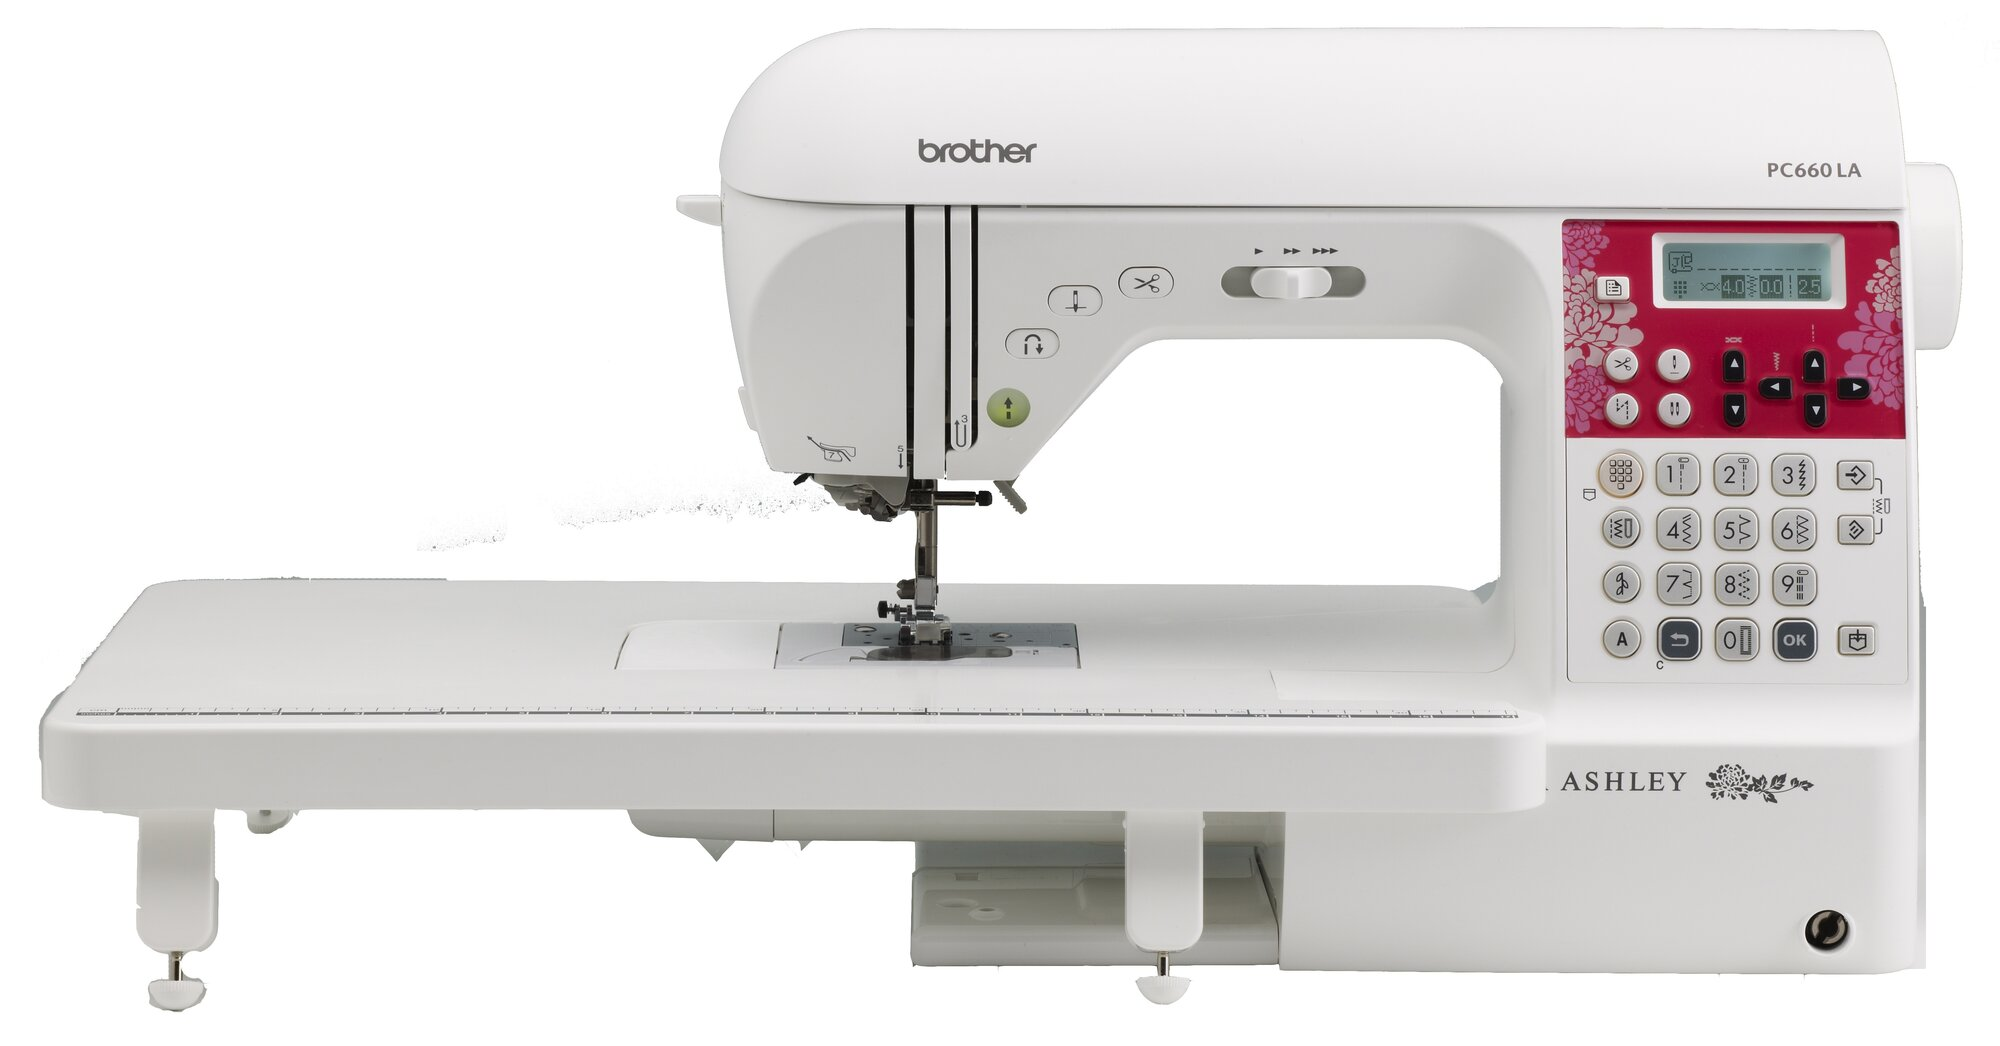 brother sewing laura ashley computerized sewing and quilting machine